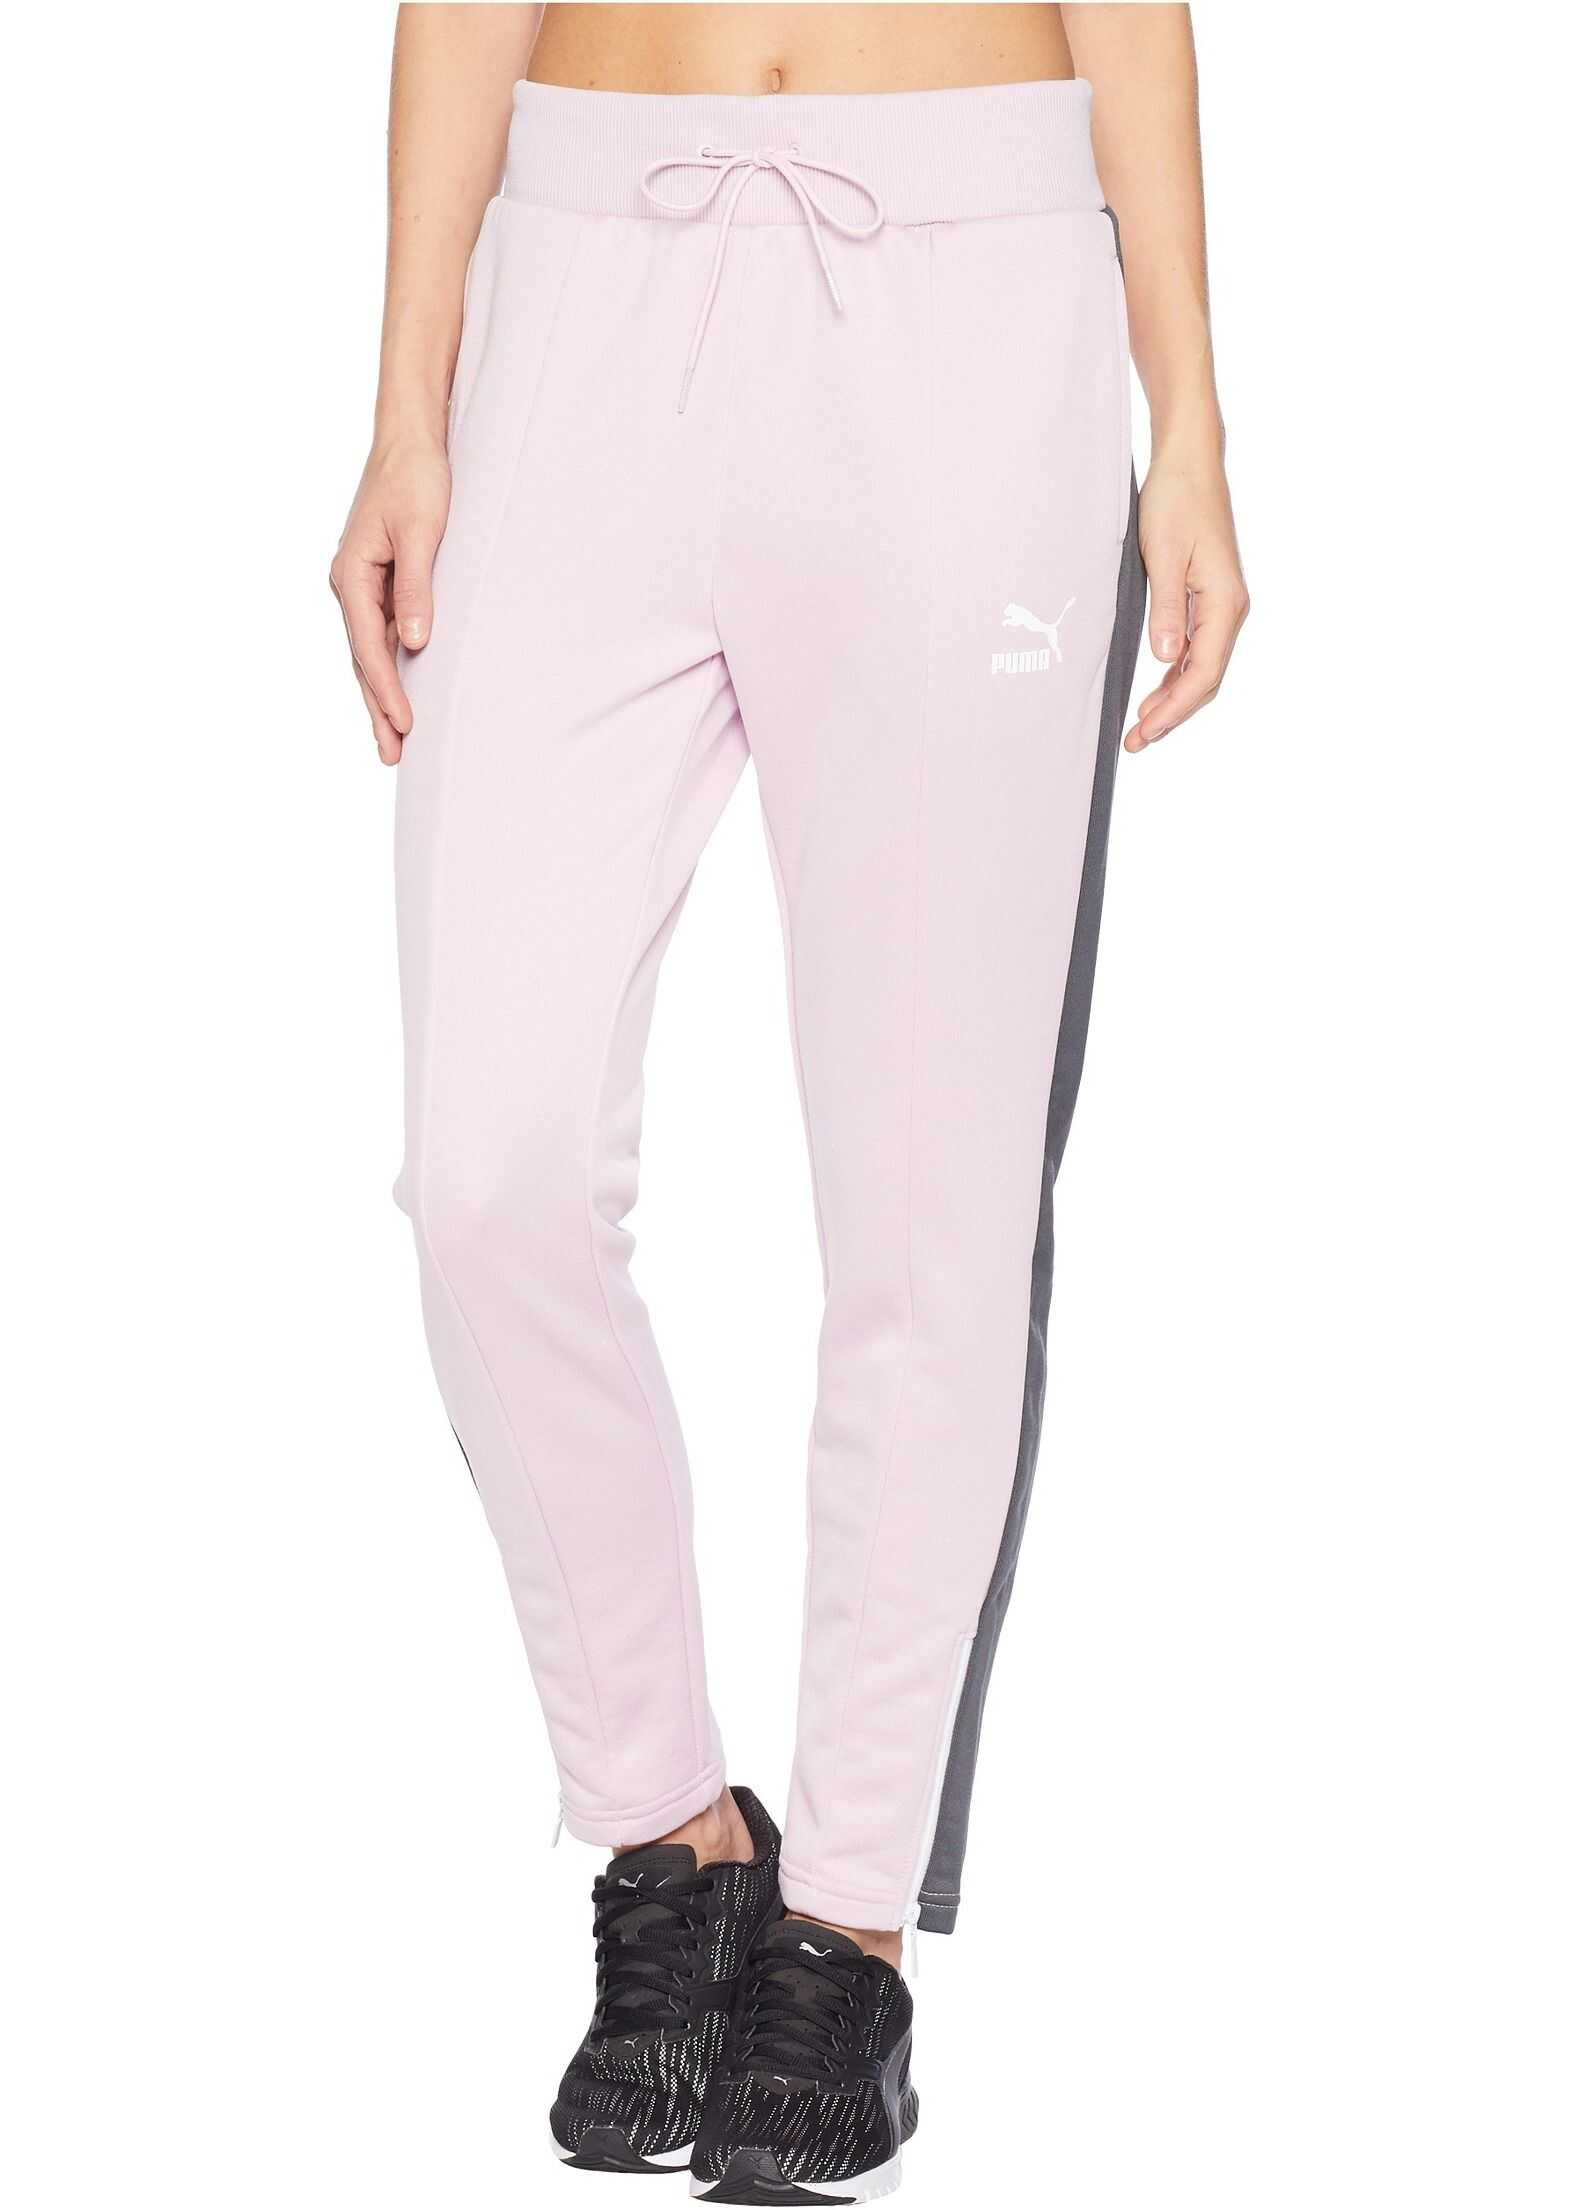 PUMA Retro Track Pants Winsome Orchid